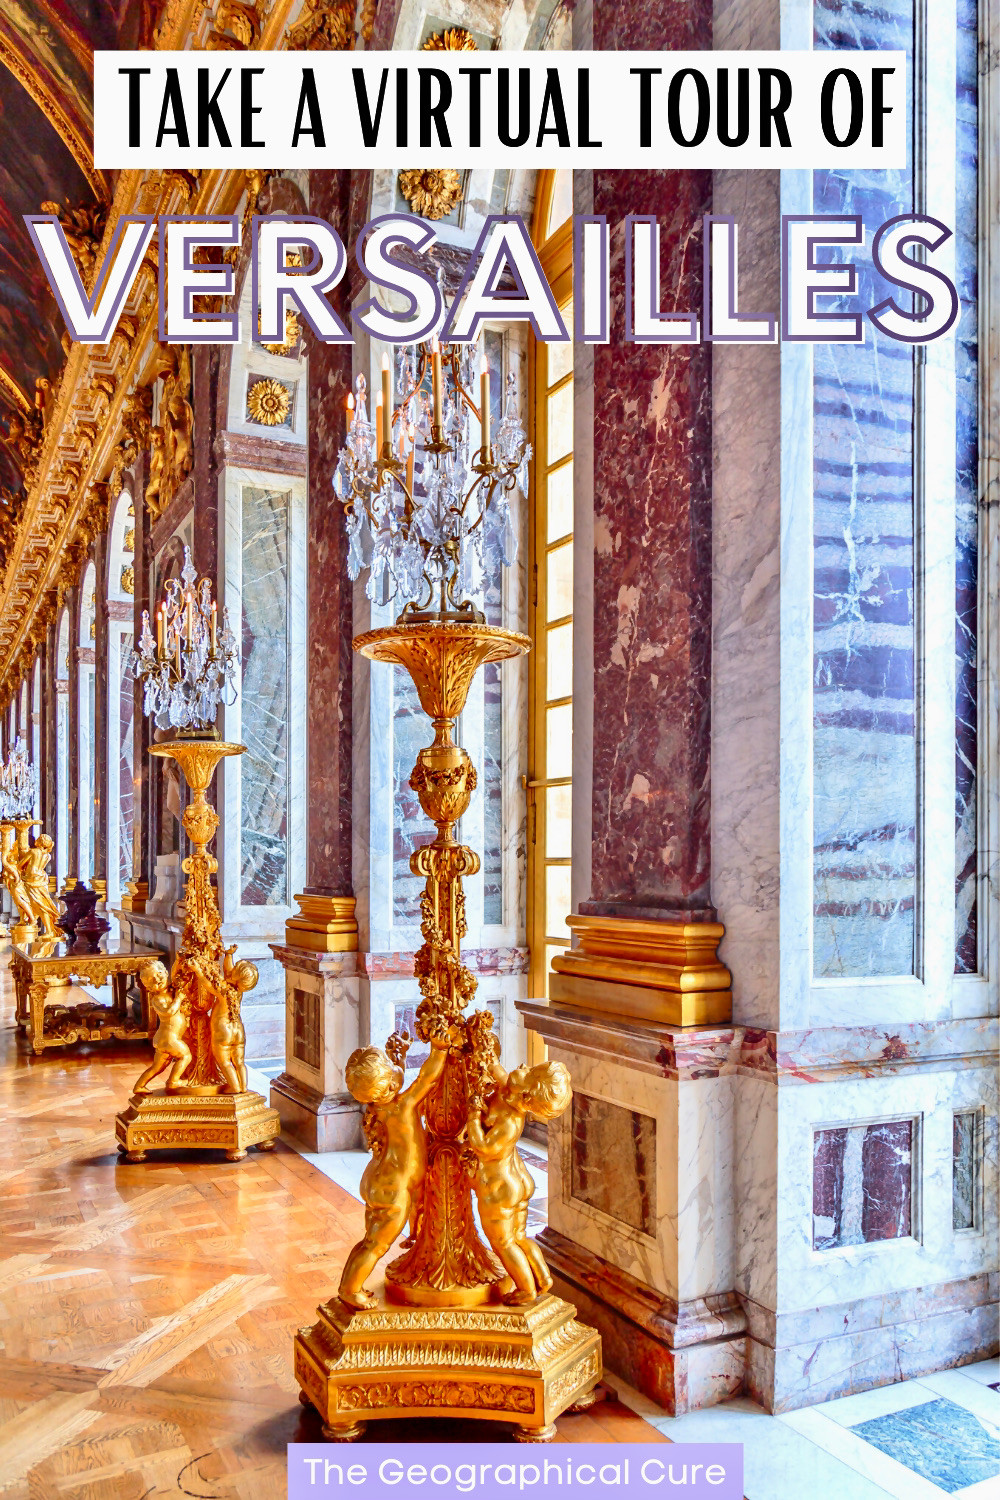 how to take a virtual tour of Versailles and see everything inside